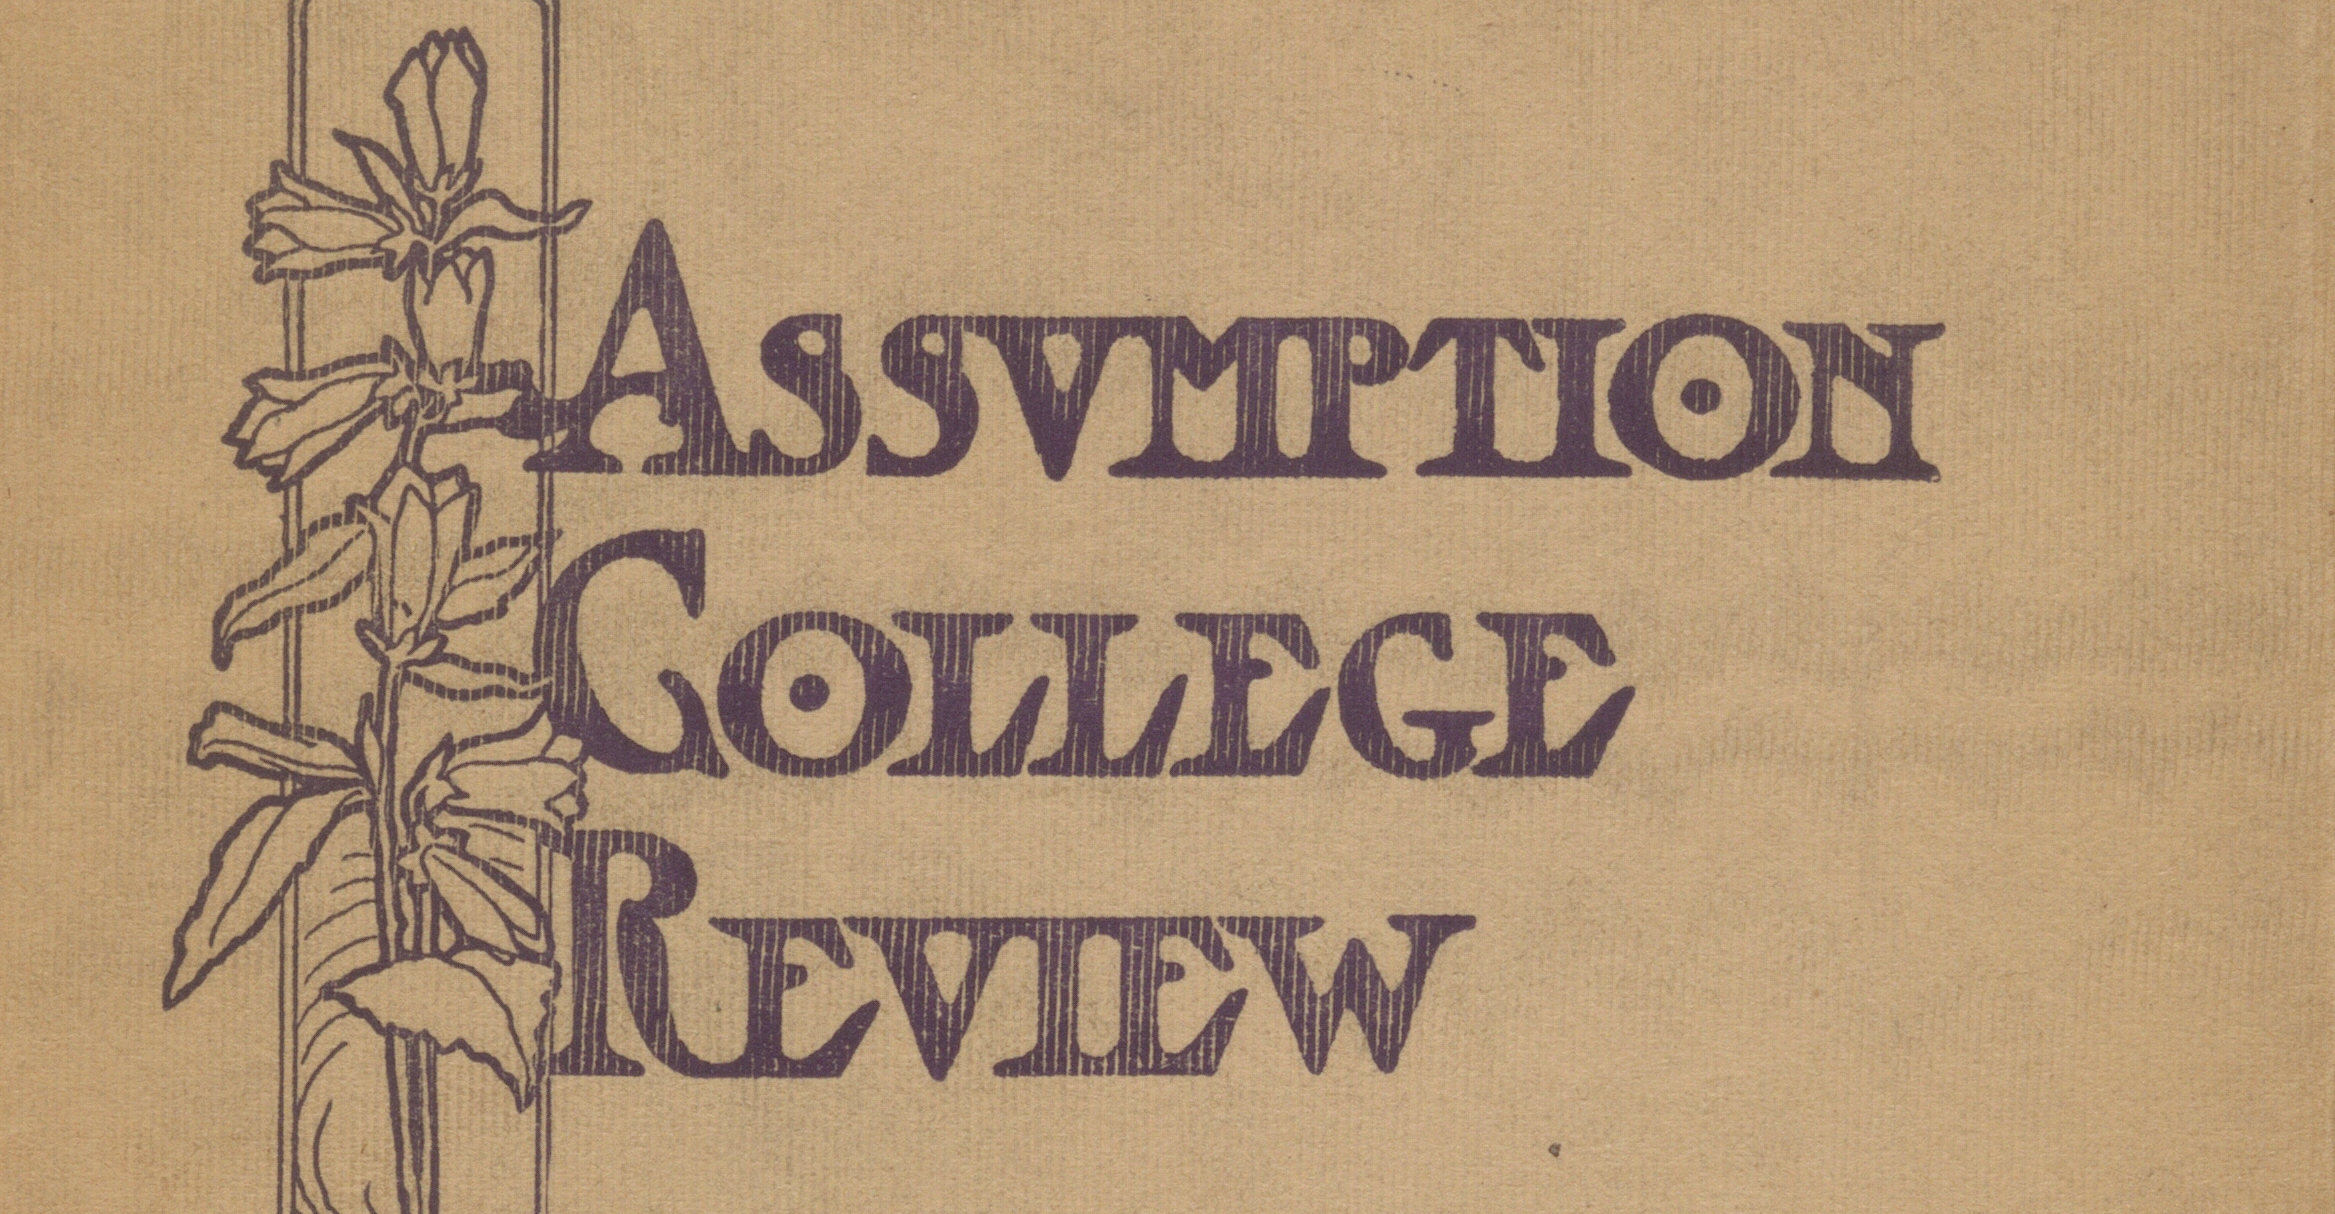 The Assumption College Review